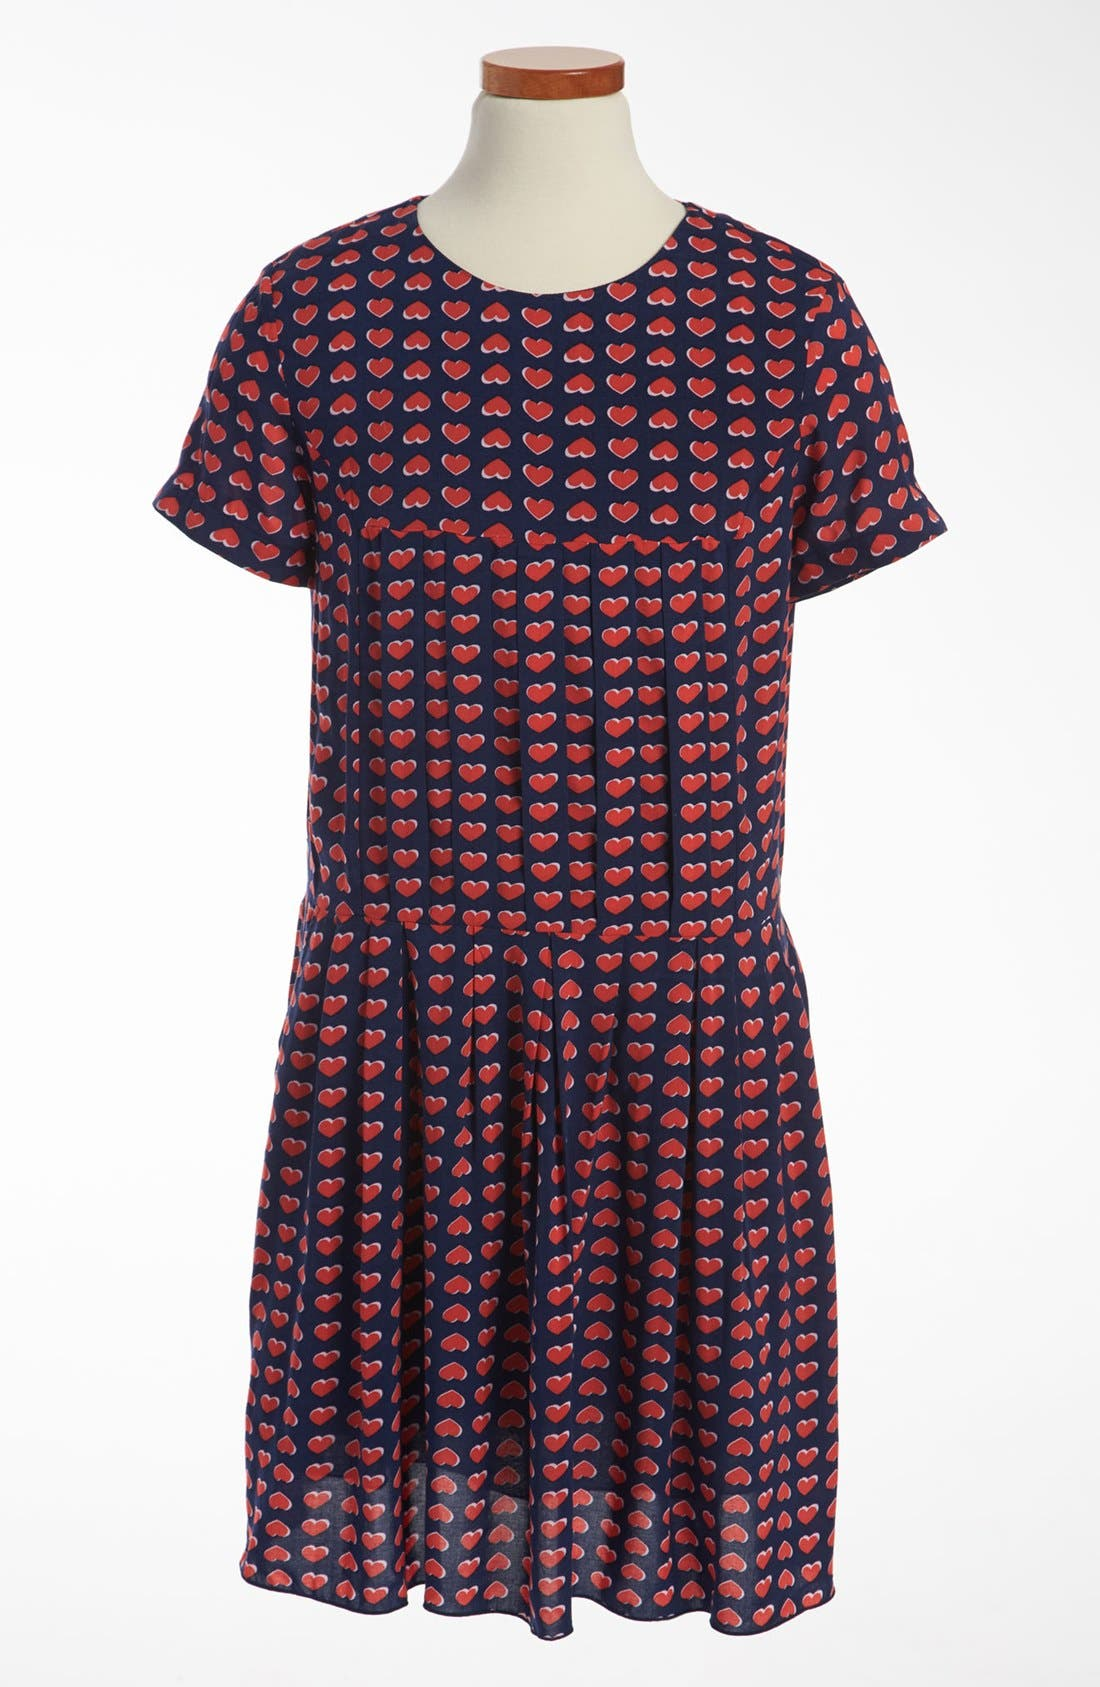 Main Image - LITTLE MARC JACOBS 'Heart Print' Woven Dress (Little Girls & Big Girls)